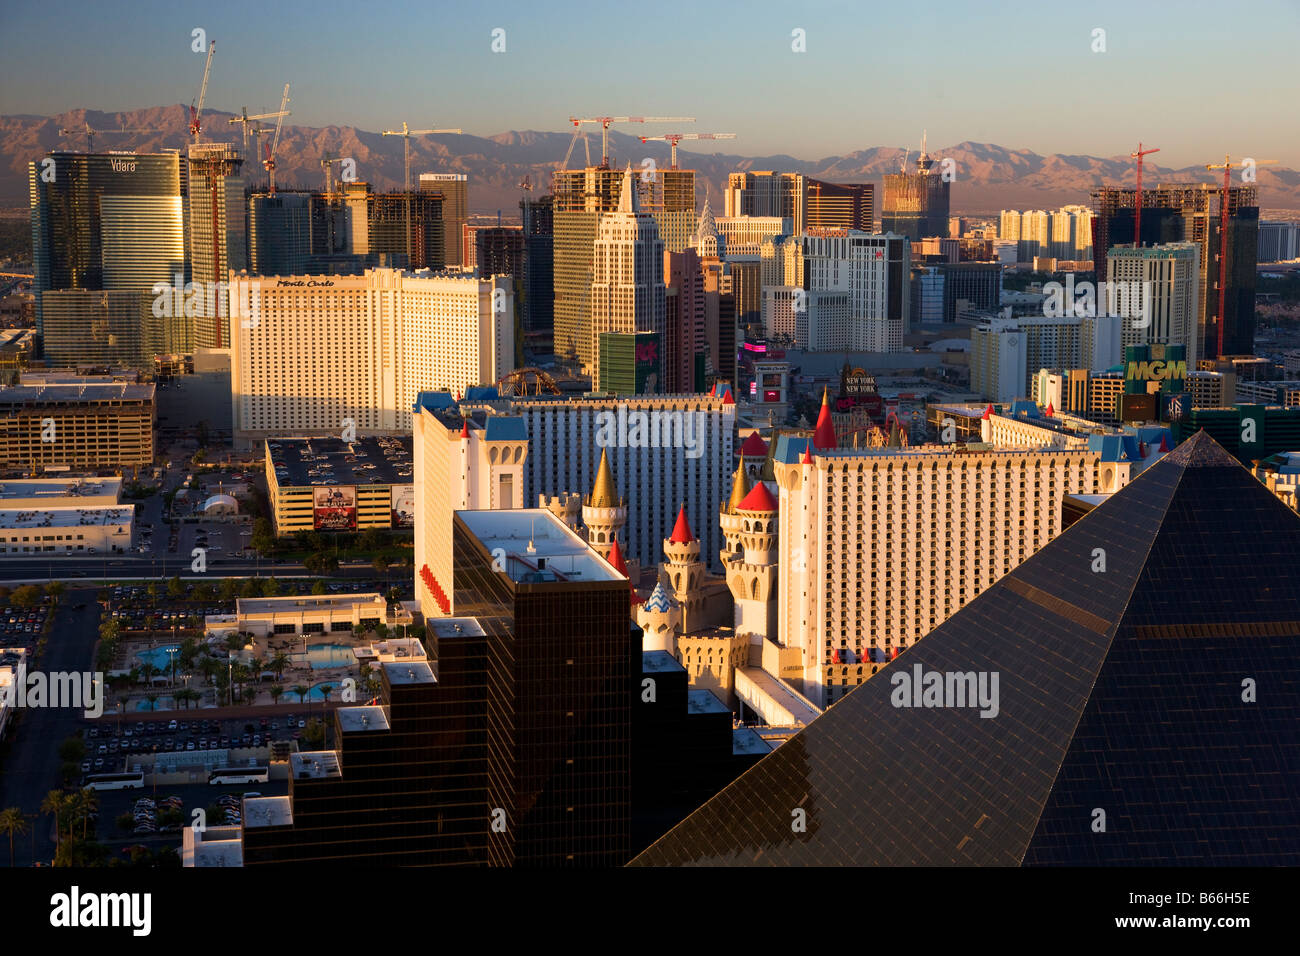 View of the Strip Las Vegas Nevada - Stock Image